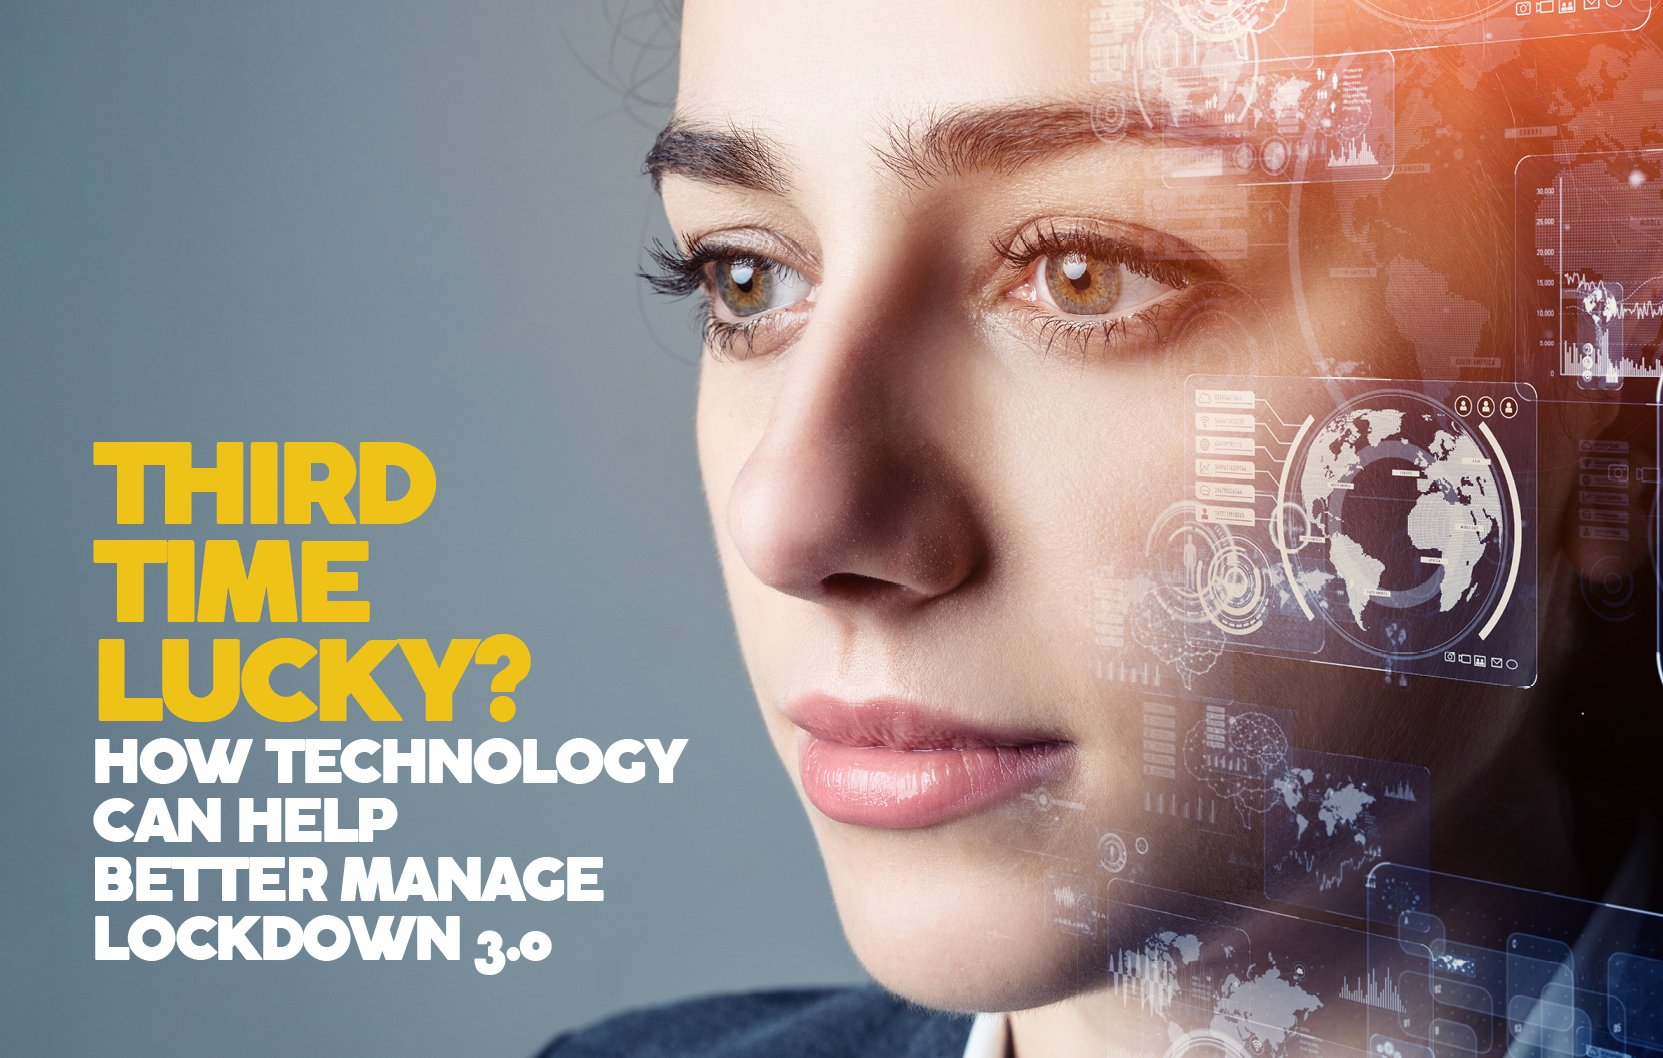 THIRD TIME LUCKY? HOW TECHNOLOGY CAN HELP MANAGE LOCKDOWN 3.0